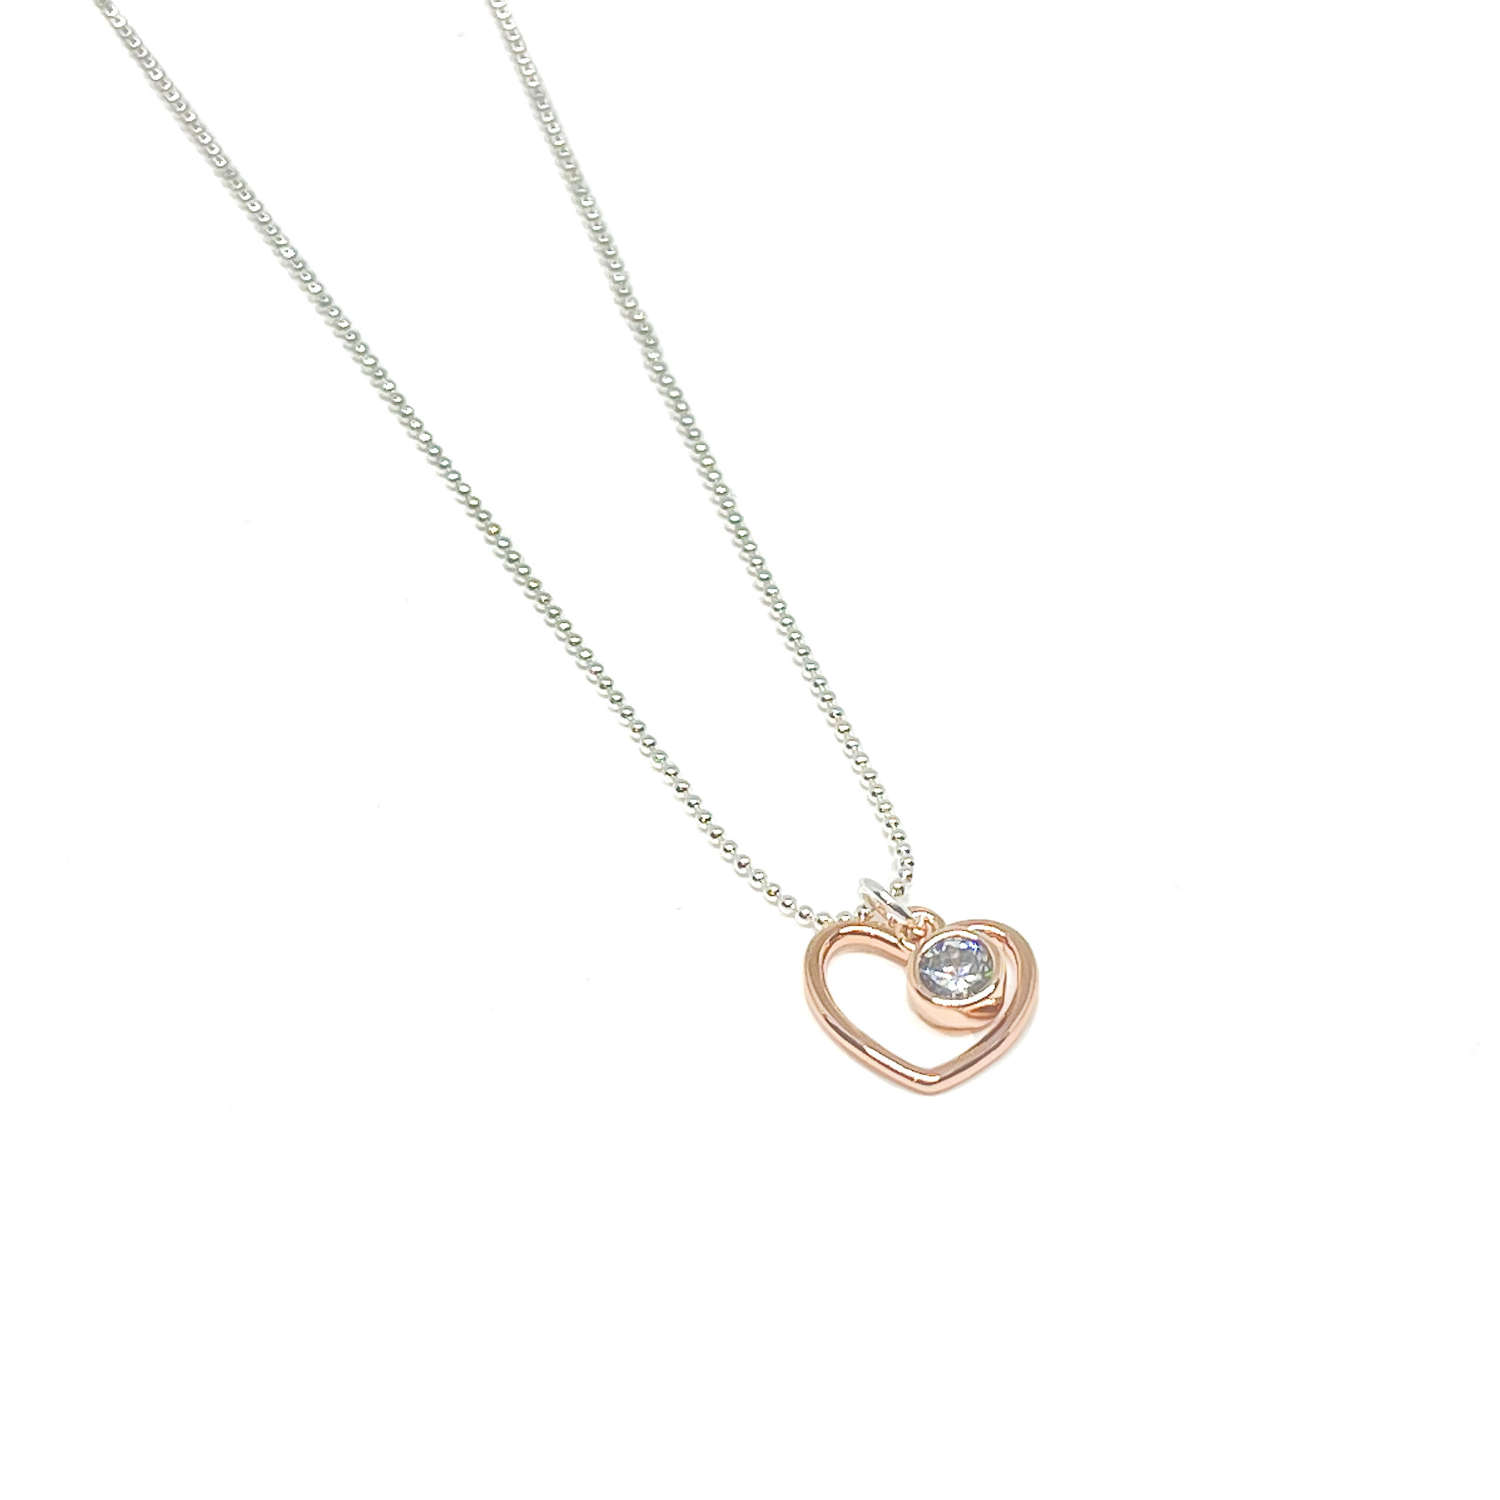 Selena Heart Necklace - Rose Gold